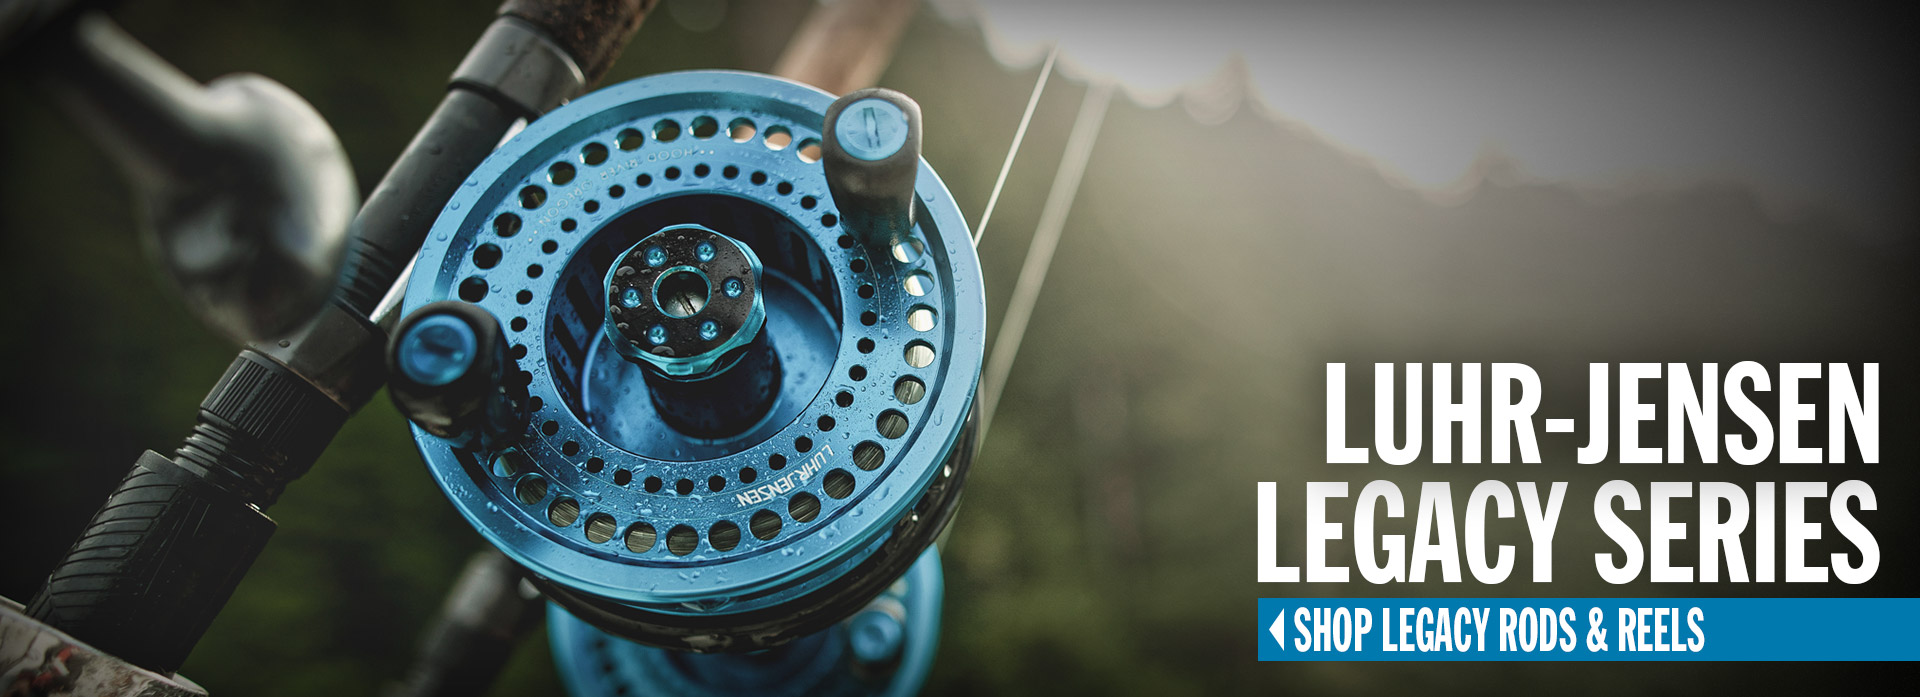 Luhr-Jensen Legacy Fishing Rods and Reels